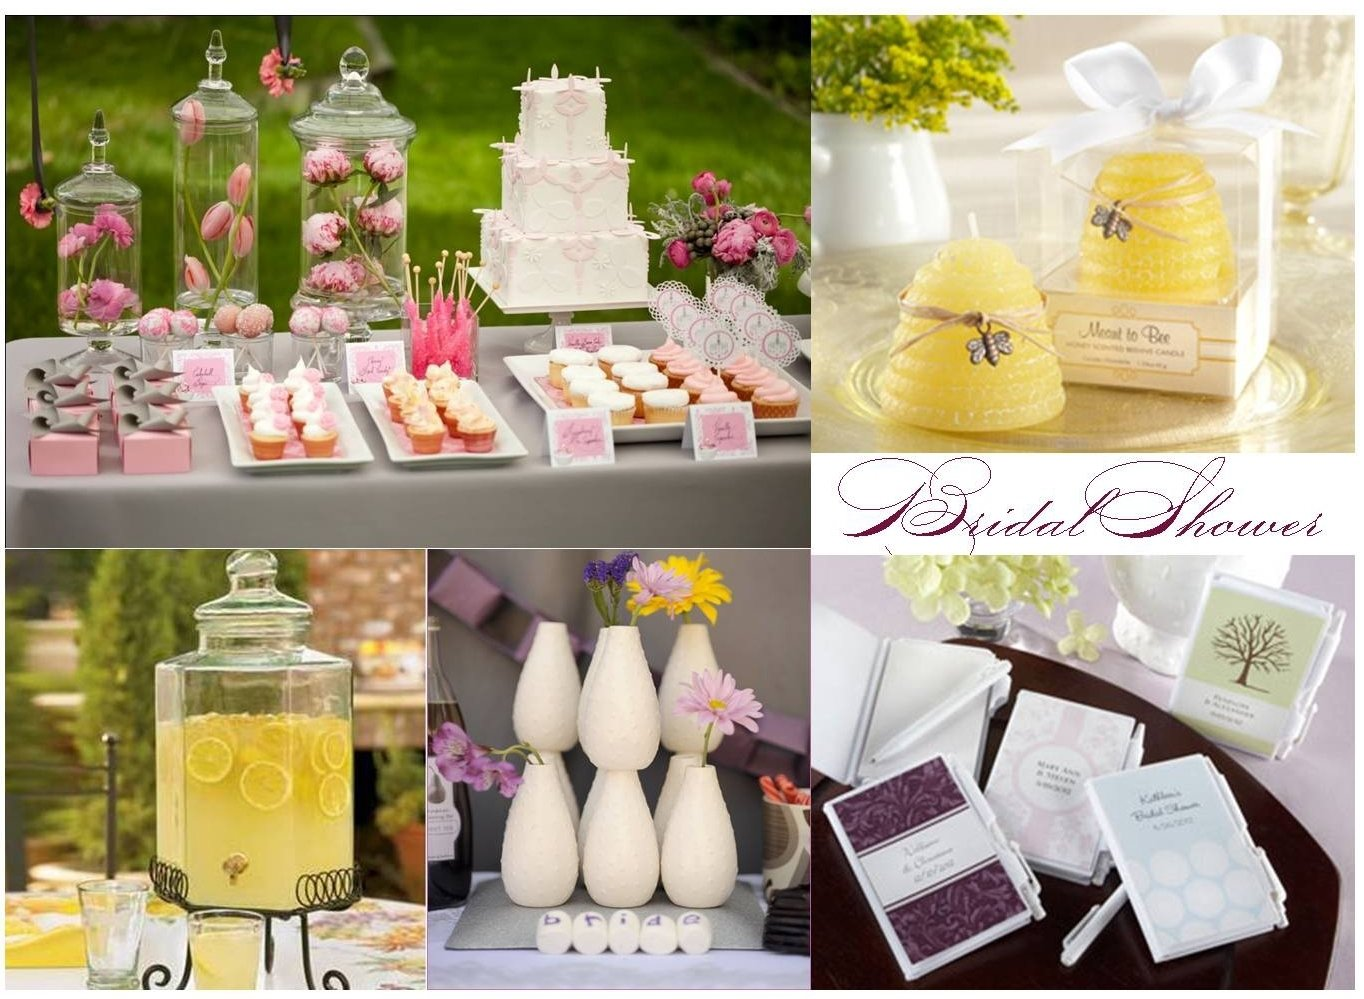 10 Nice Wedding Shower Ideas And Themes tbdress blog all about the wedding shower theme ideas 3 2020